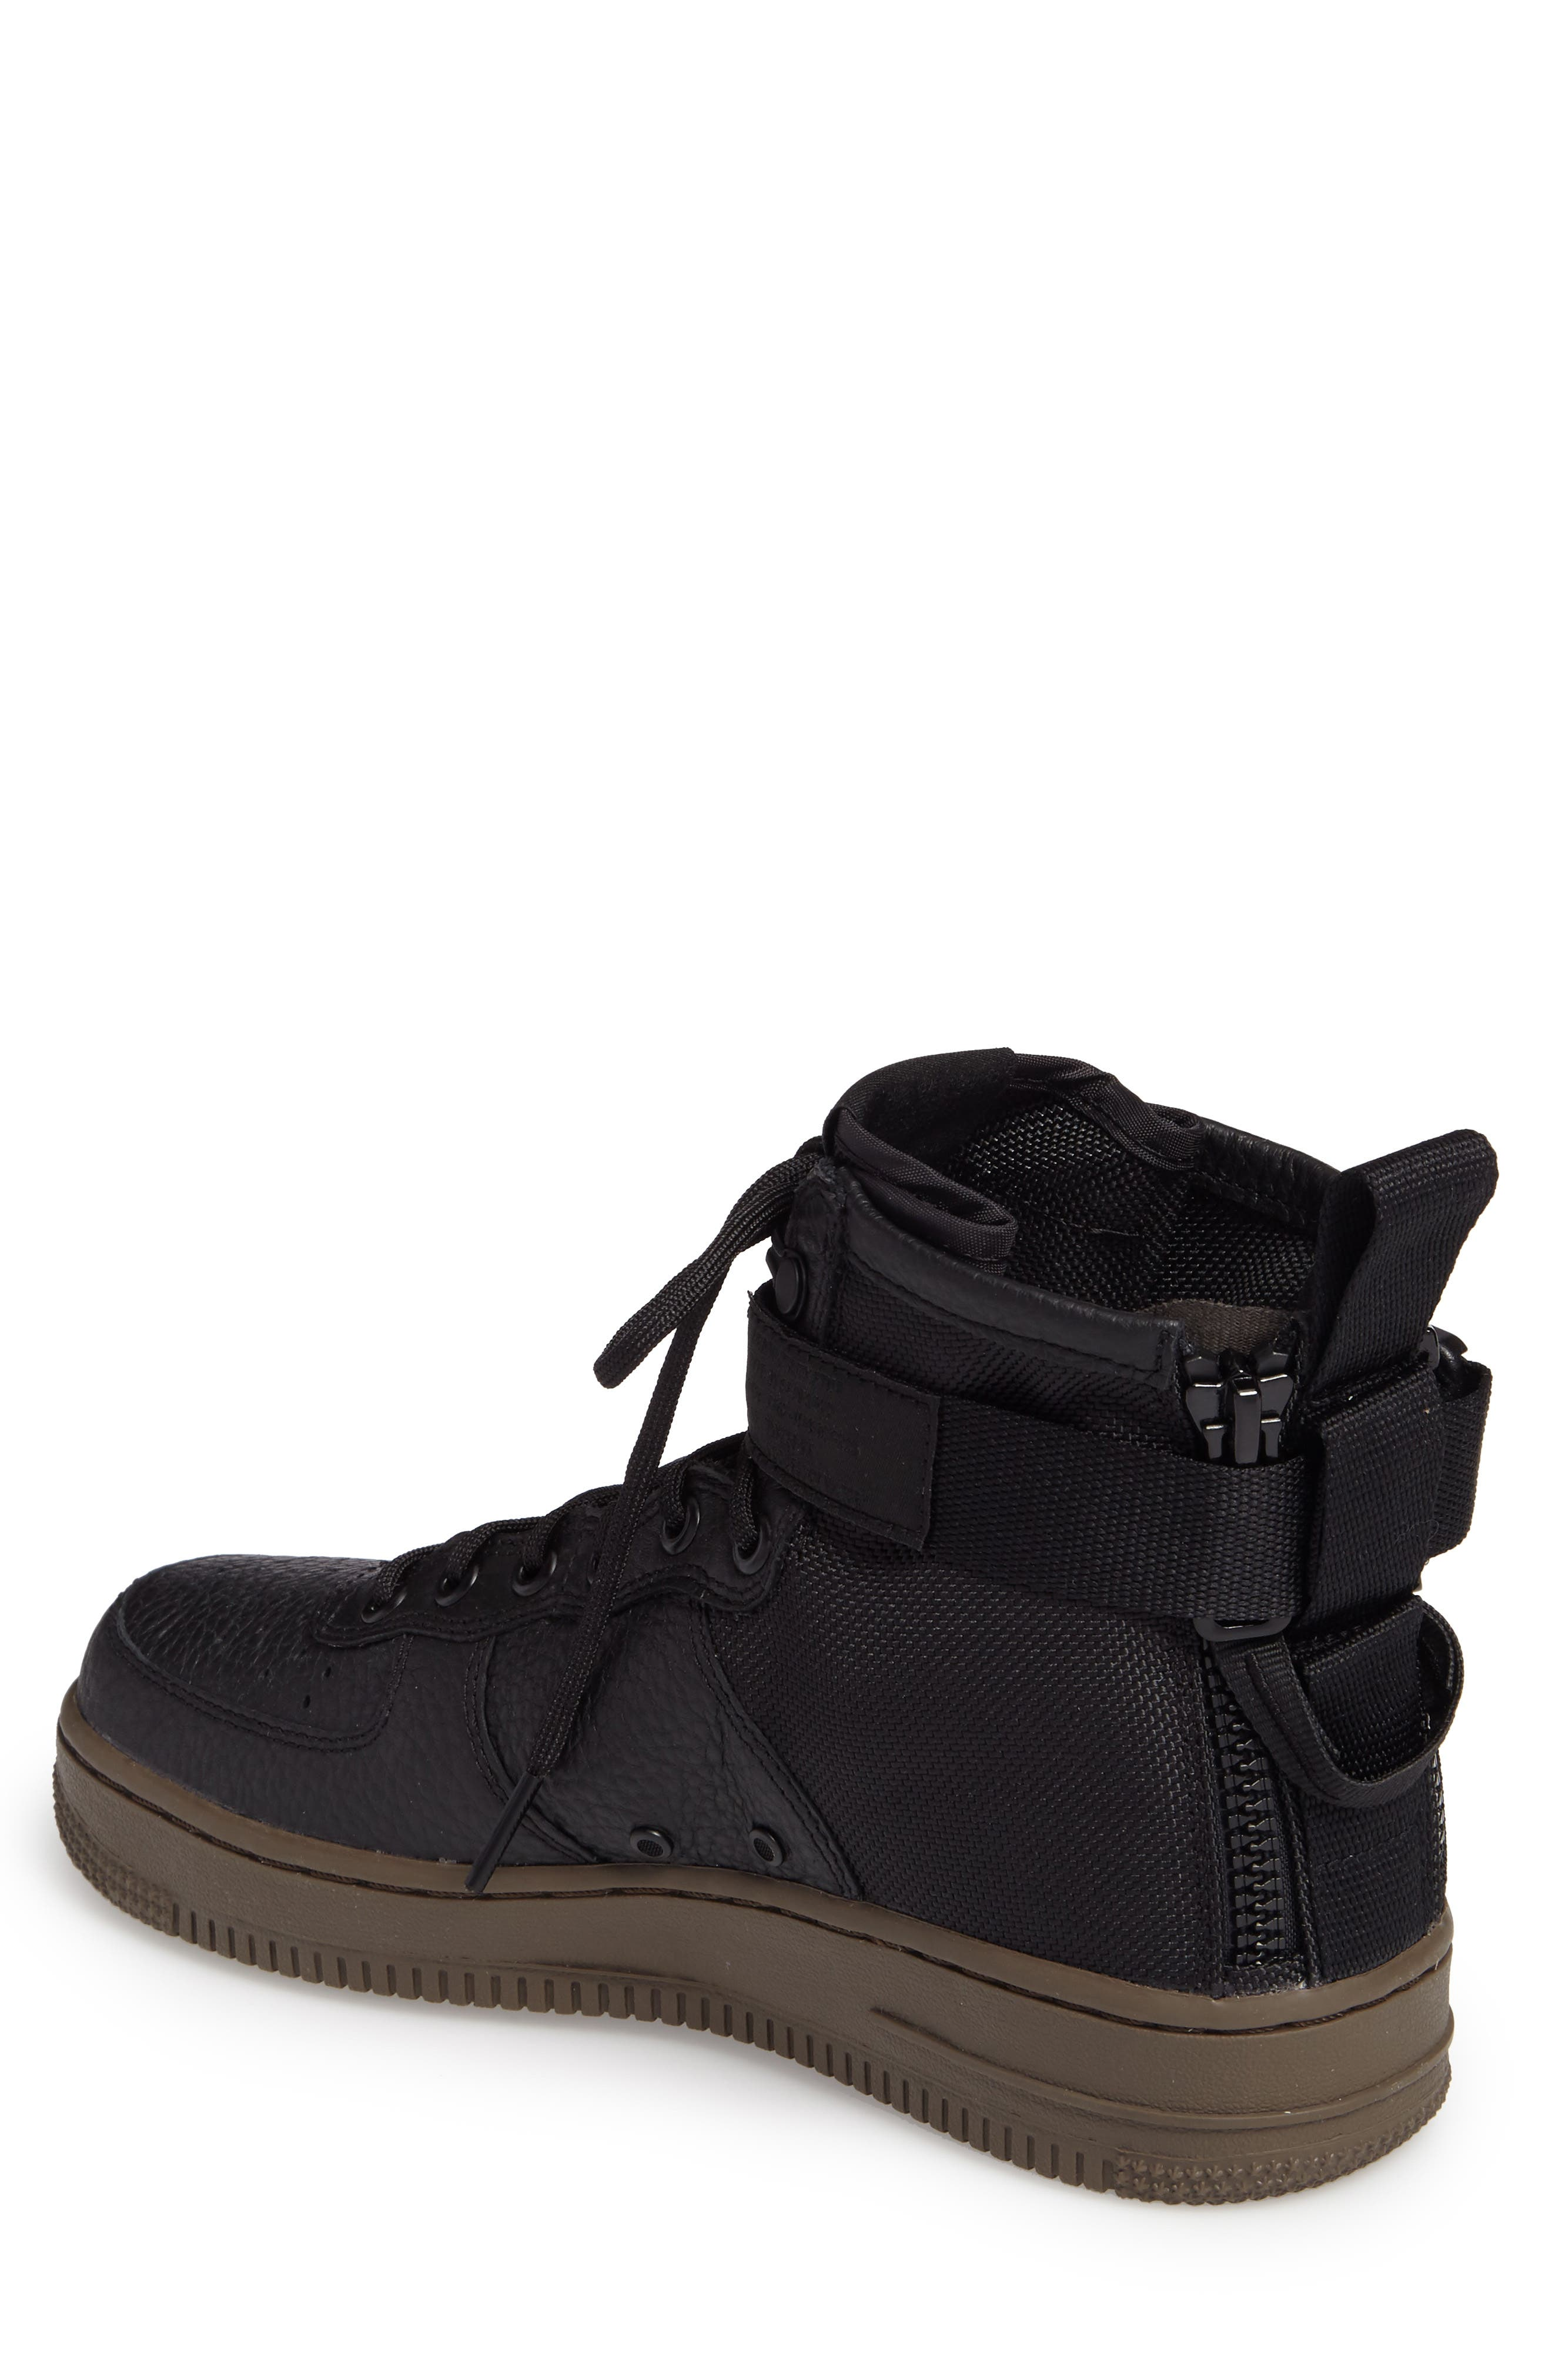 SF Air Force 1 Mid Sneaker,                             Alternate thumbnail 2, color,                             003